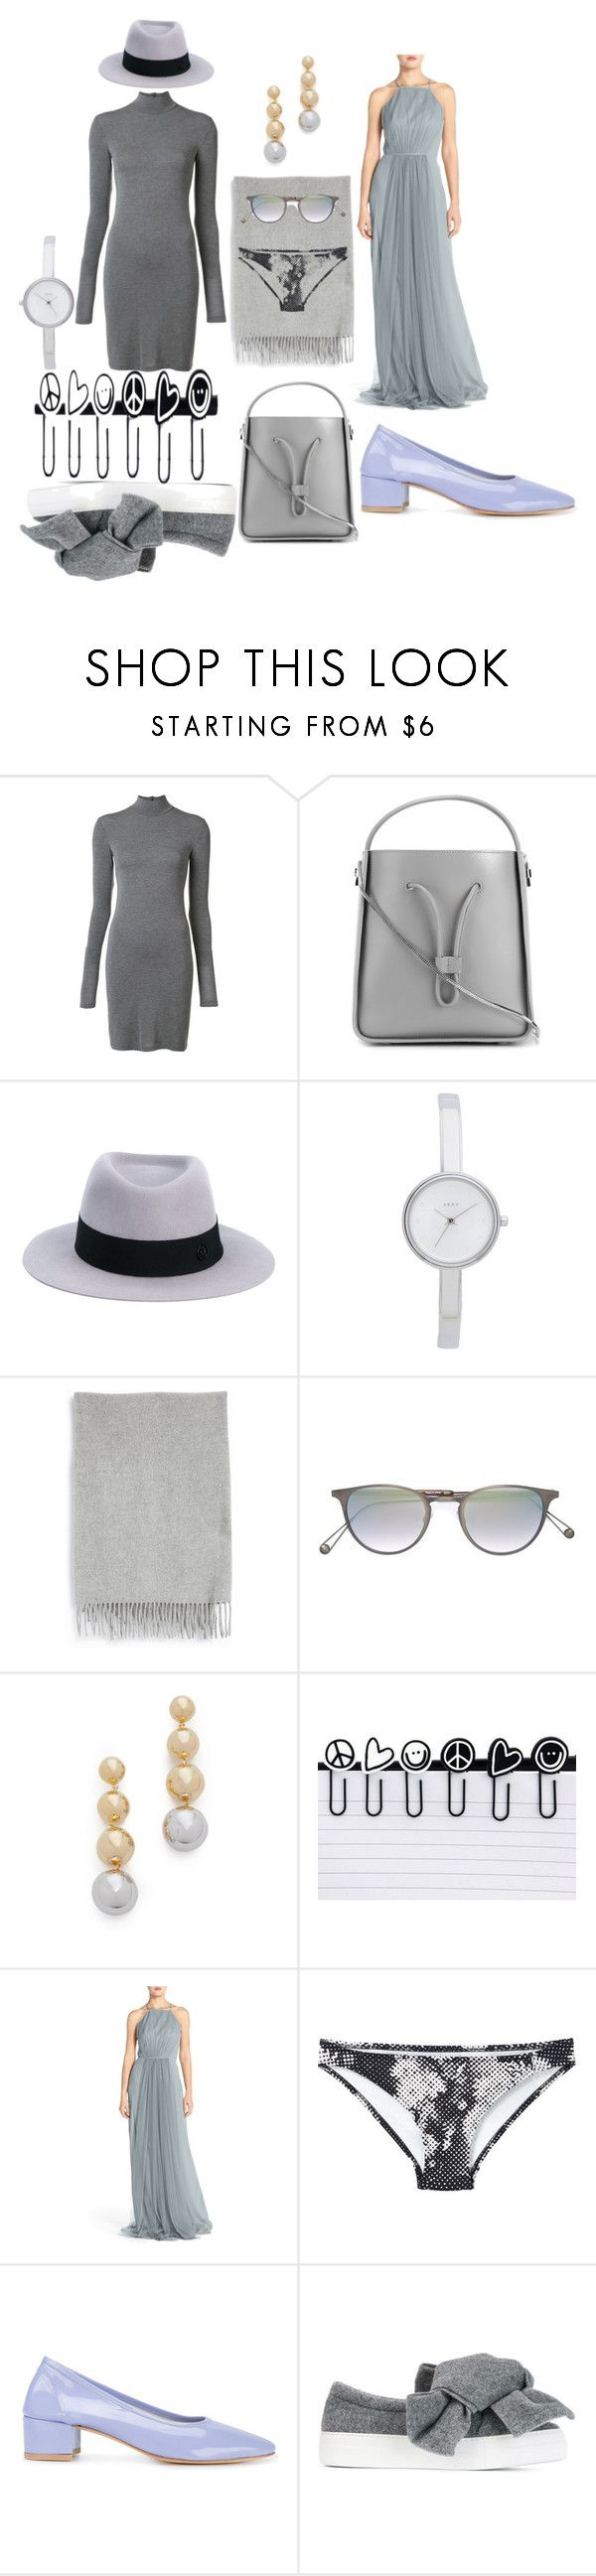 """""""Funcky fashions"""" by racheal-taylor ❤ liked on Polyvore featuring Gareth Pugh, 3.1 Phillip Lim, Maison Michel, DKNY, Acne Studios, Garrett Leight, Elizabeth and James, Peace Love World, Monique Lhuillier and Malia Mills"""